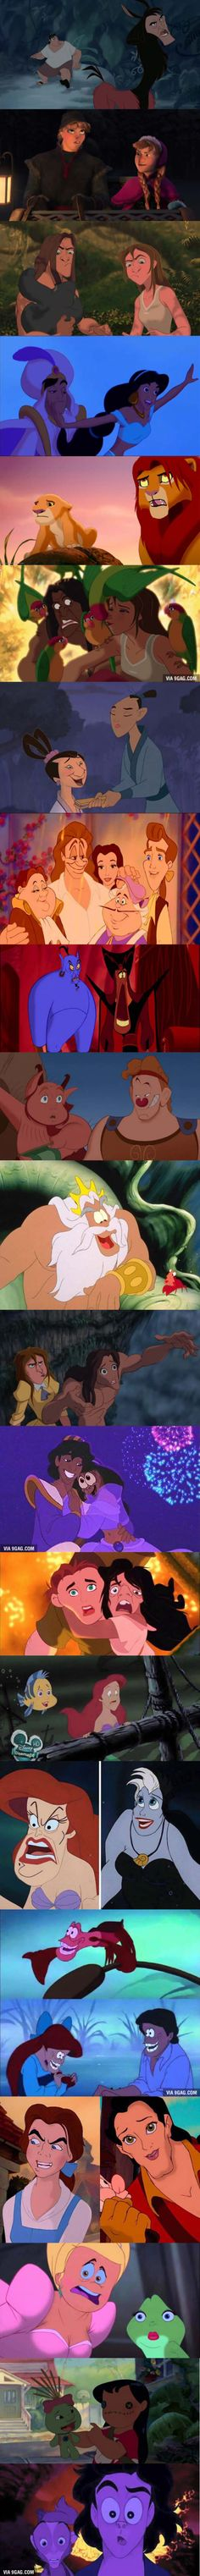 These 21 Disney's Face Swaps Are Surprisingly Funny